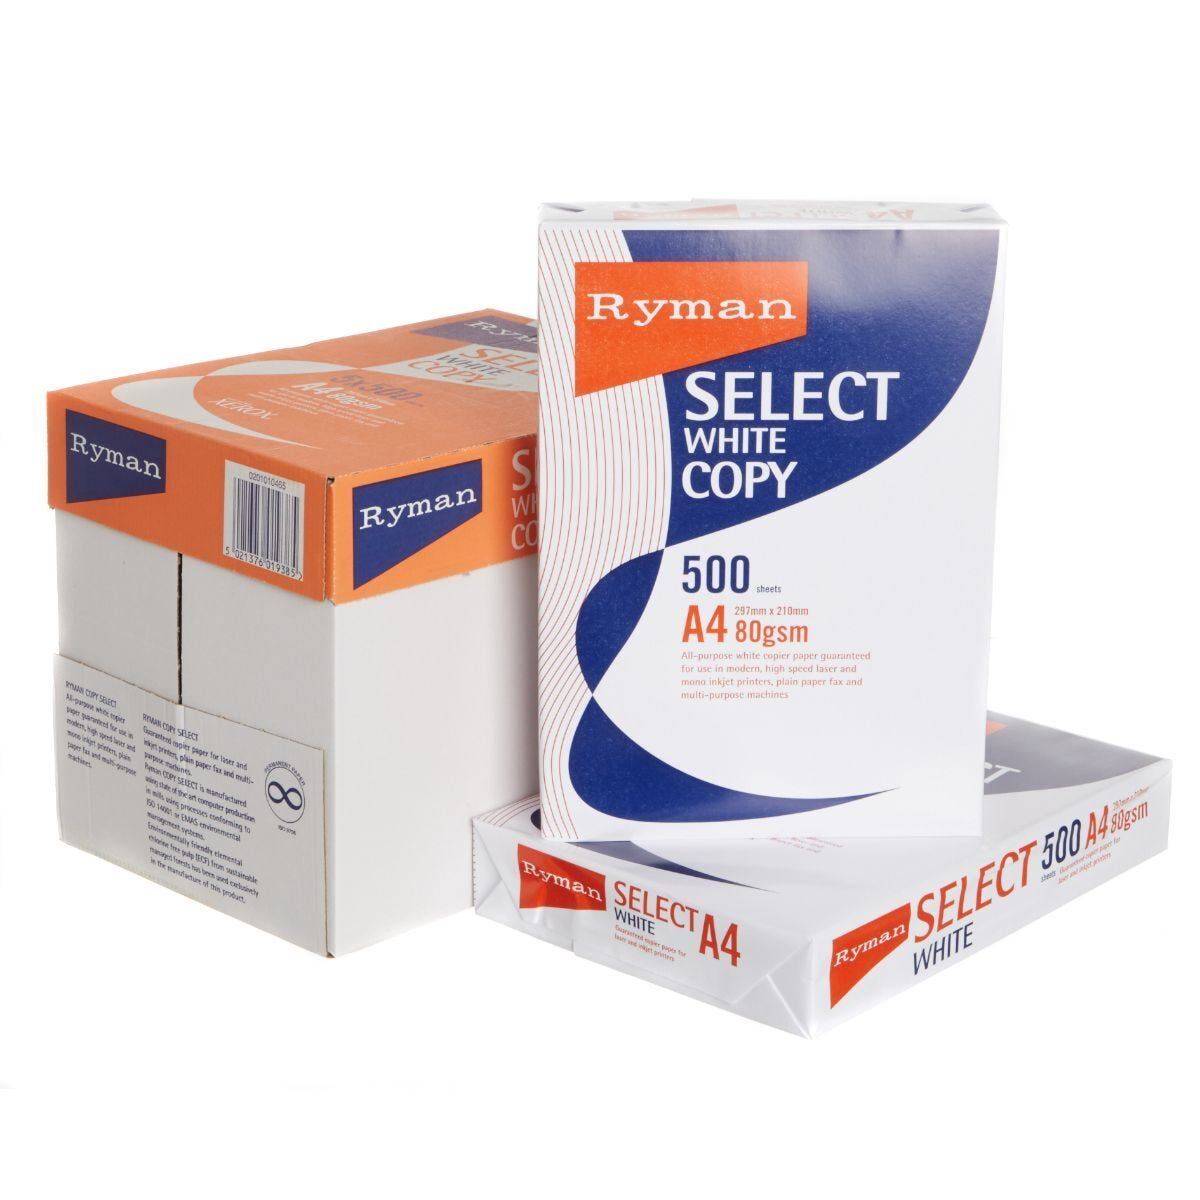 Ryman Select Copy Ream of Paper A4 80gsm 500 Sheets  Box of 5 Reams